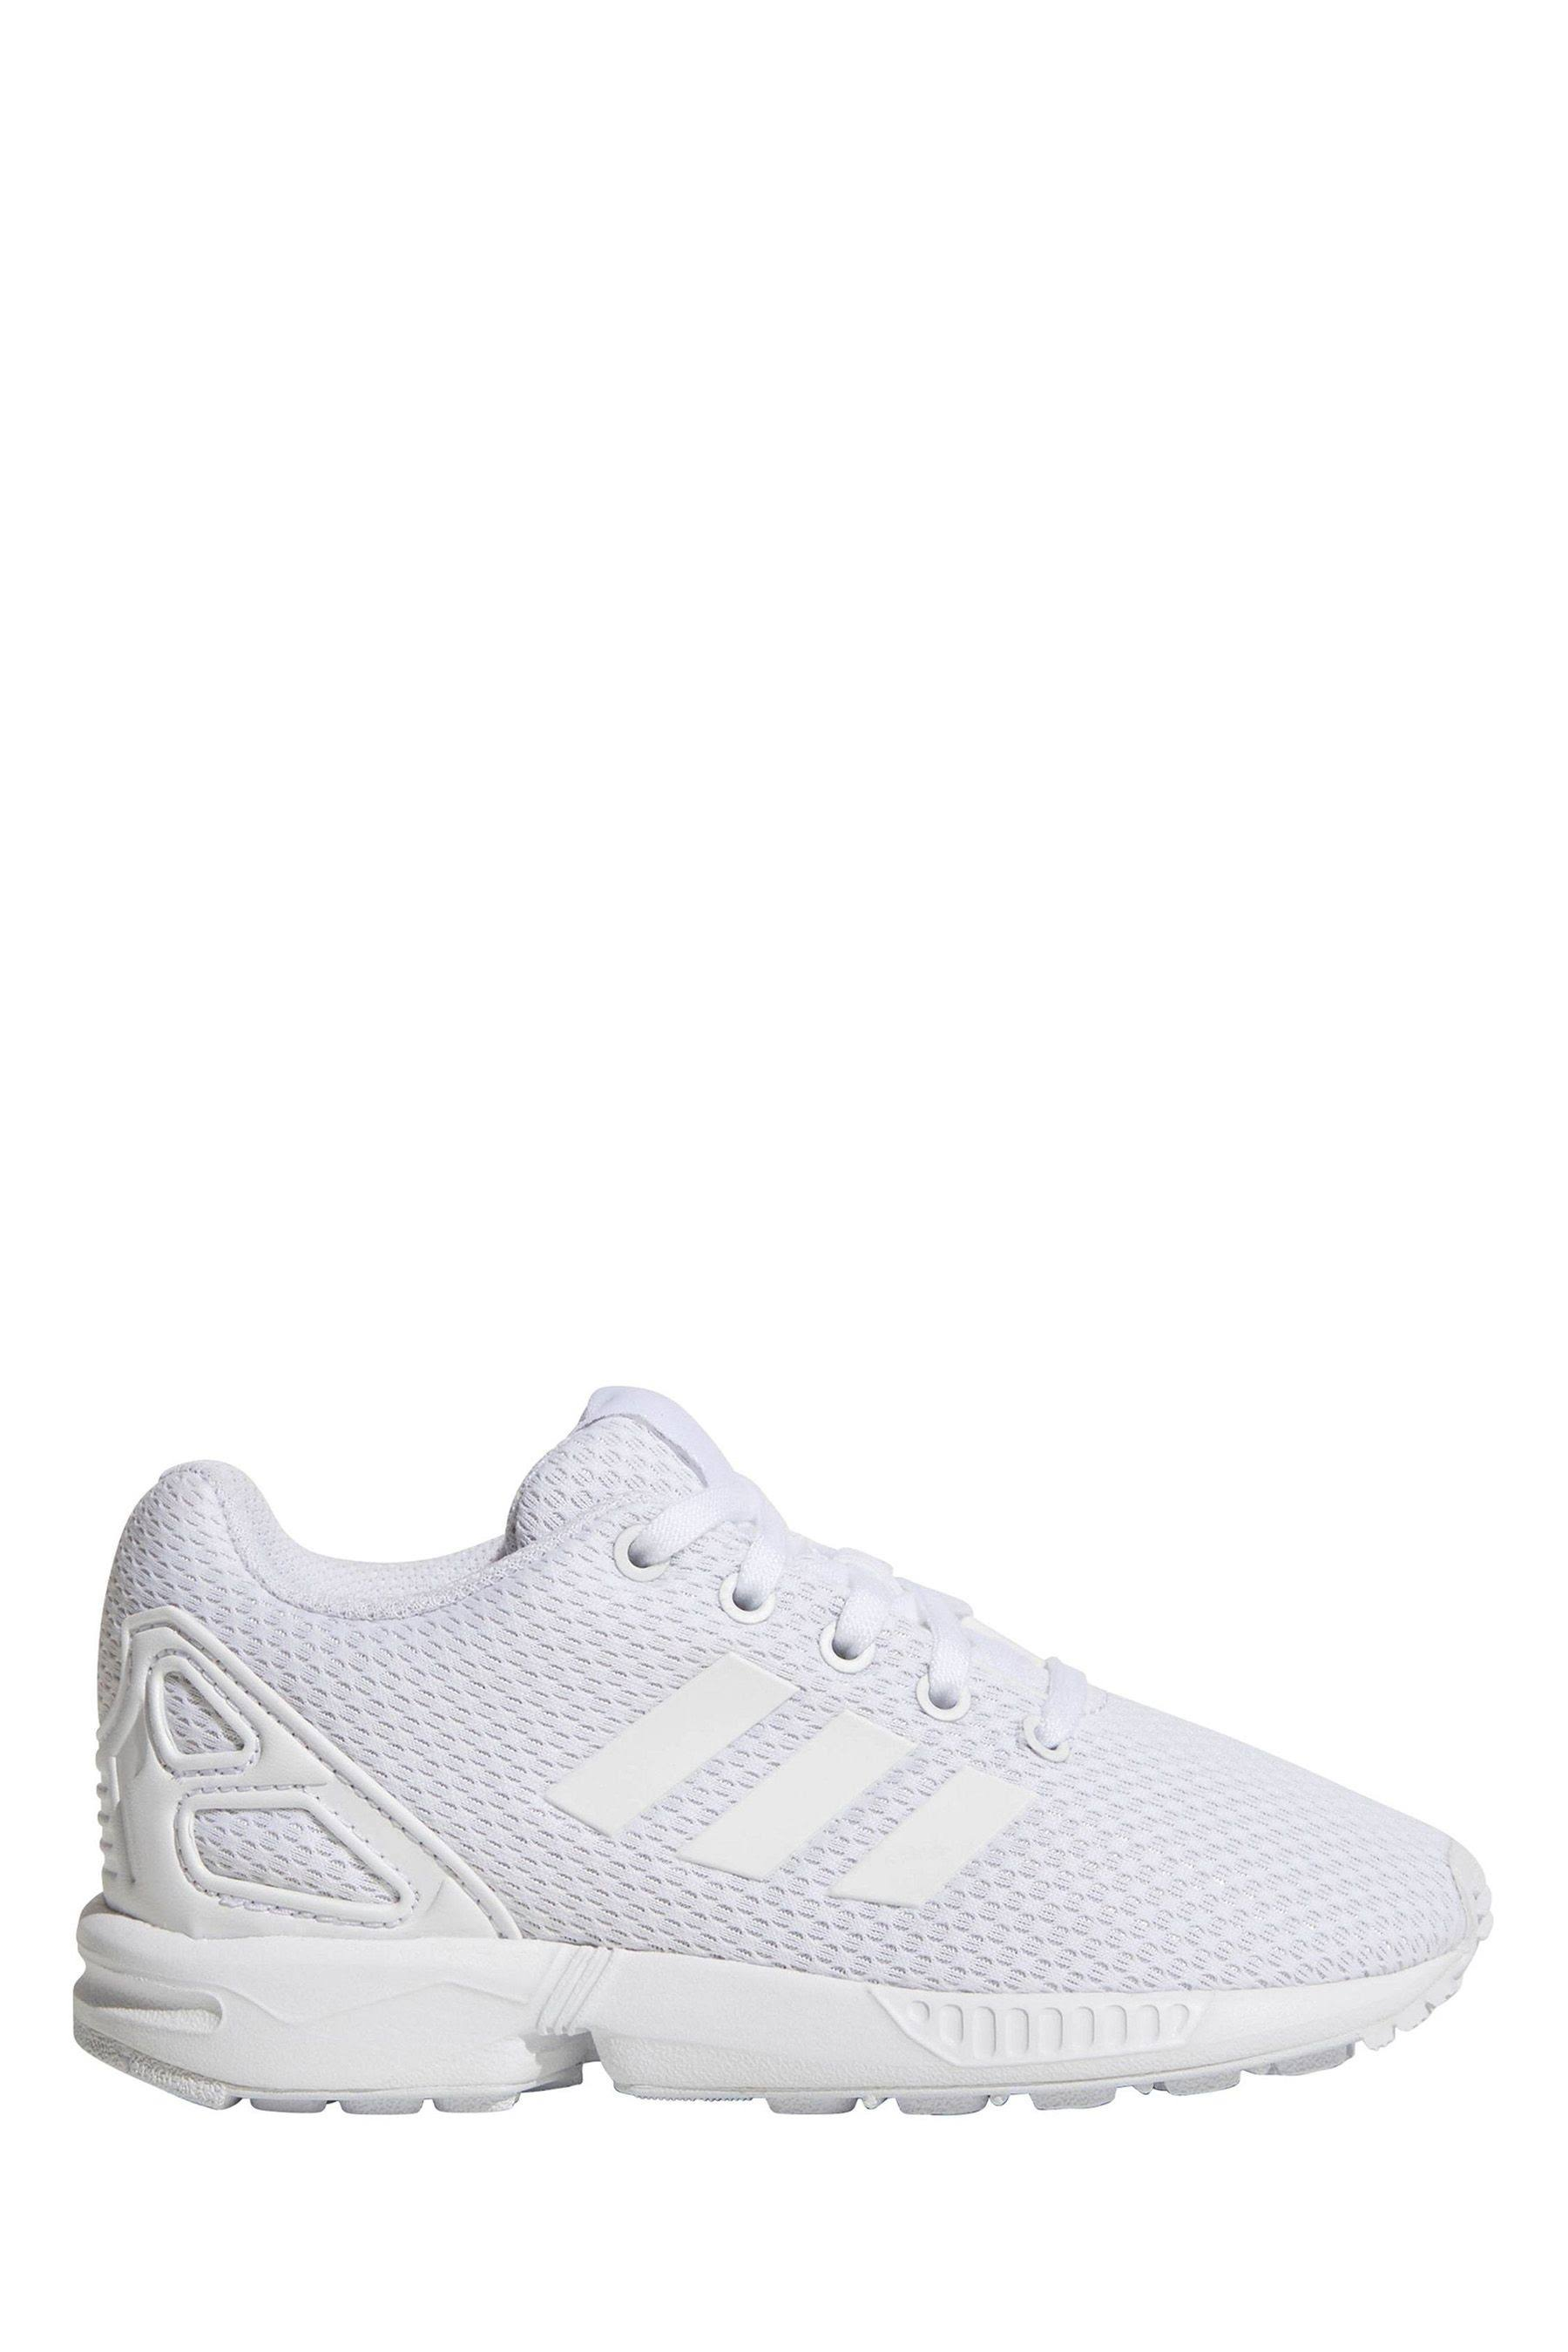 Adidas ZX Flux Shoes - Kids - White